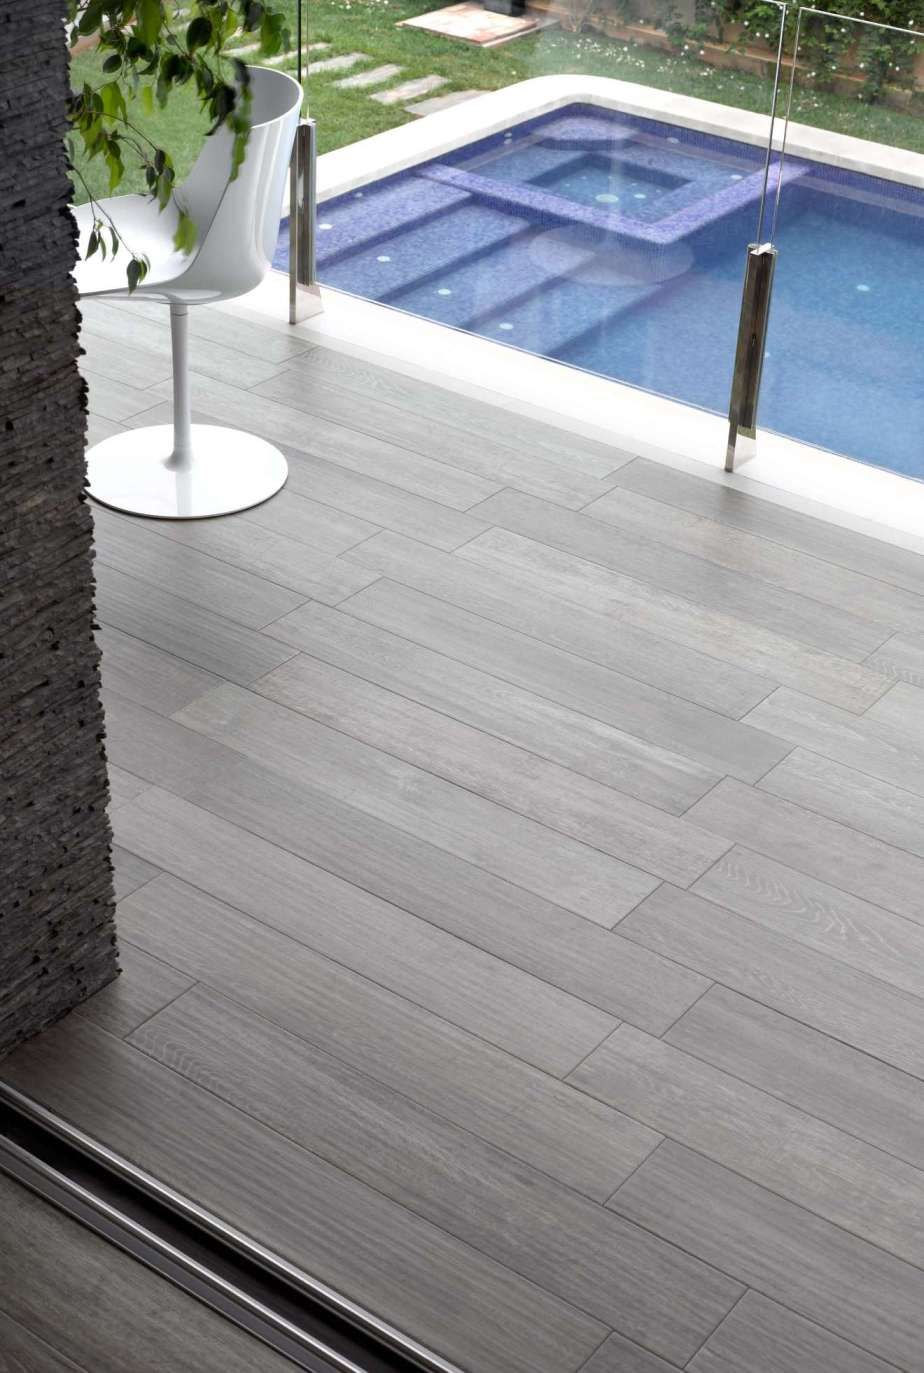 Timber look tiles are a great way to seamlessly connect indoors to timber look tiles are a great way to seamlessly connect indoors to outdoors visit tile baanklon Images